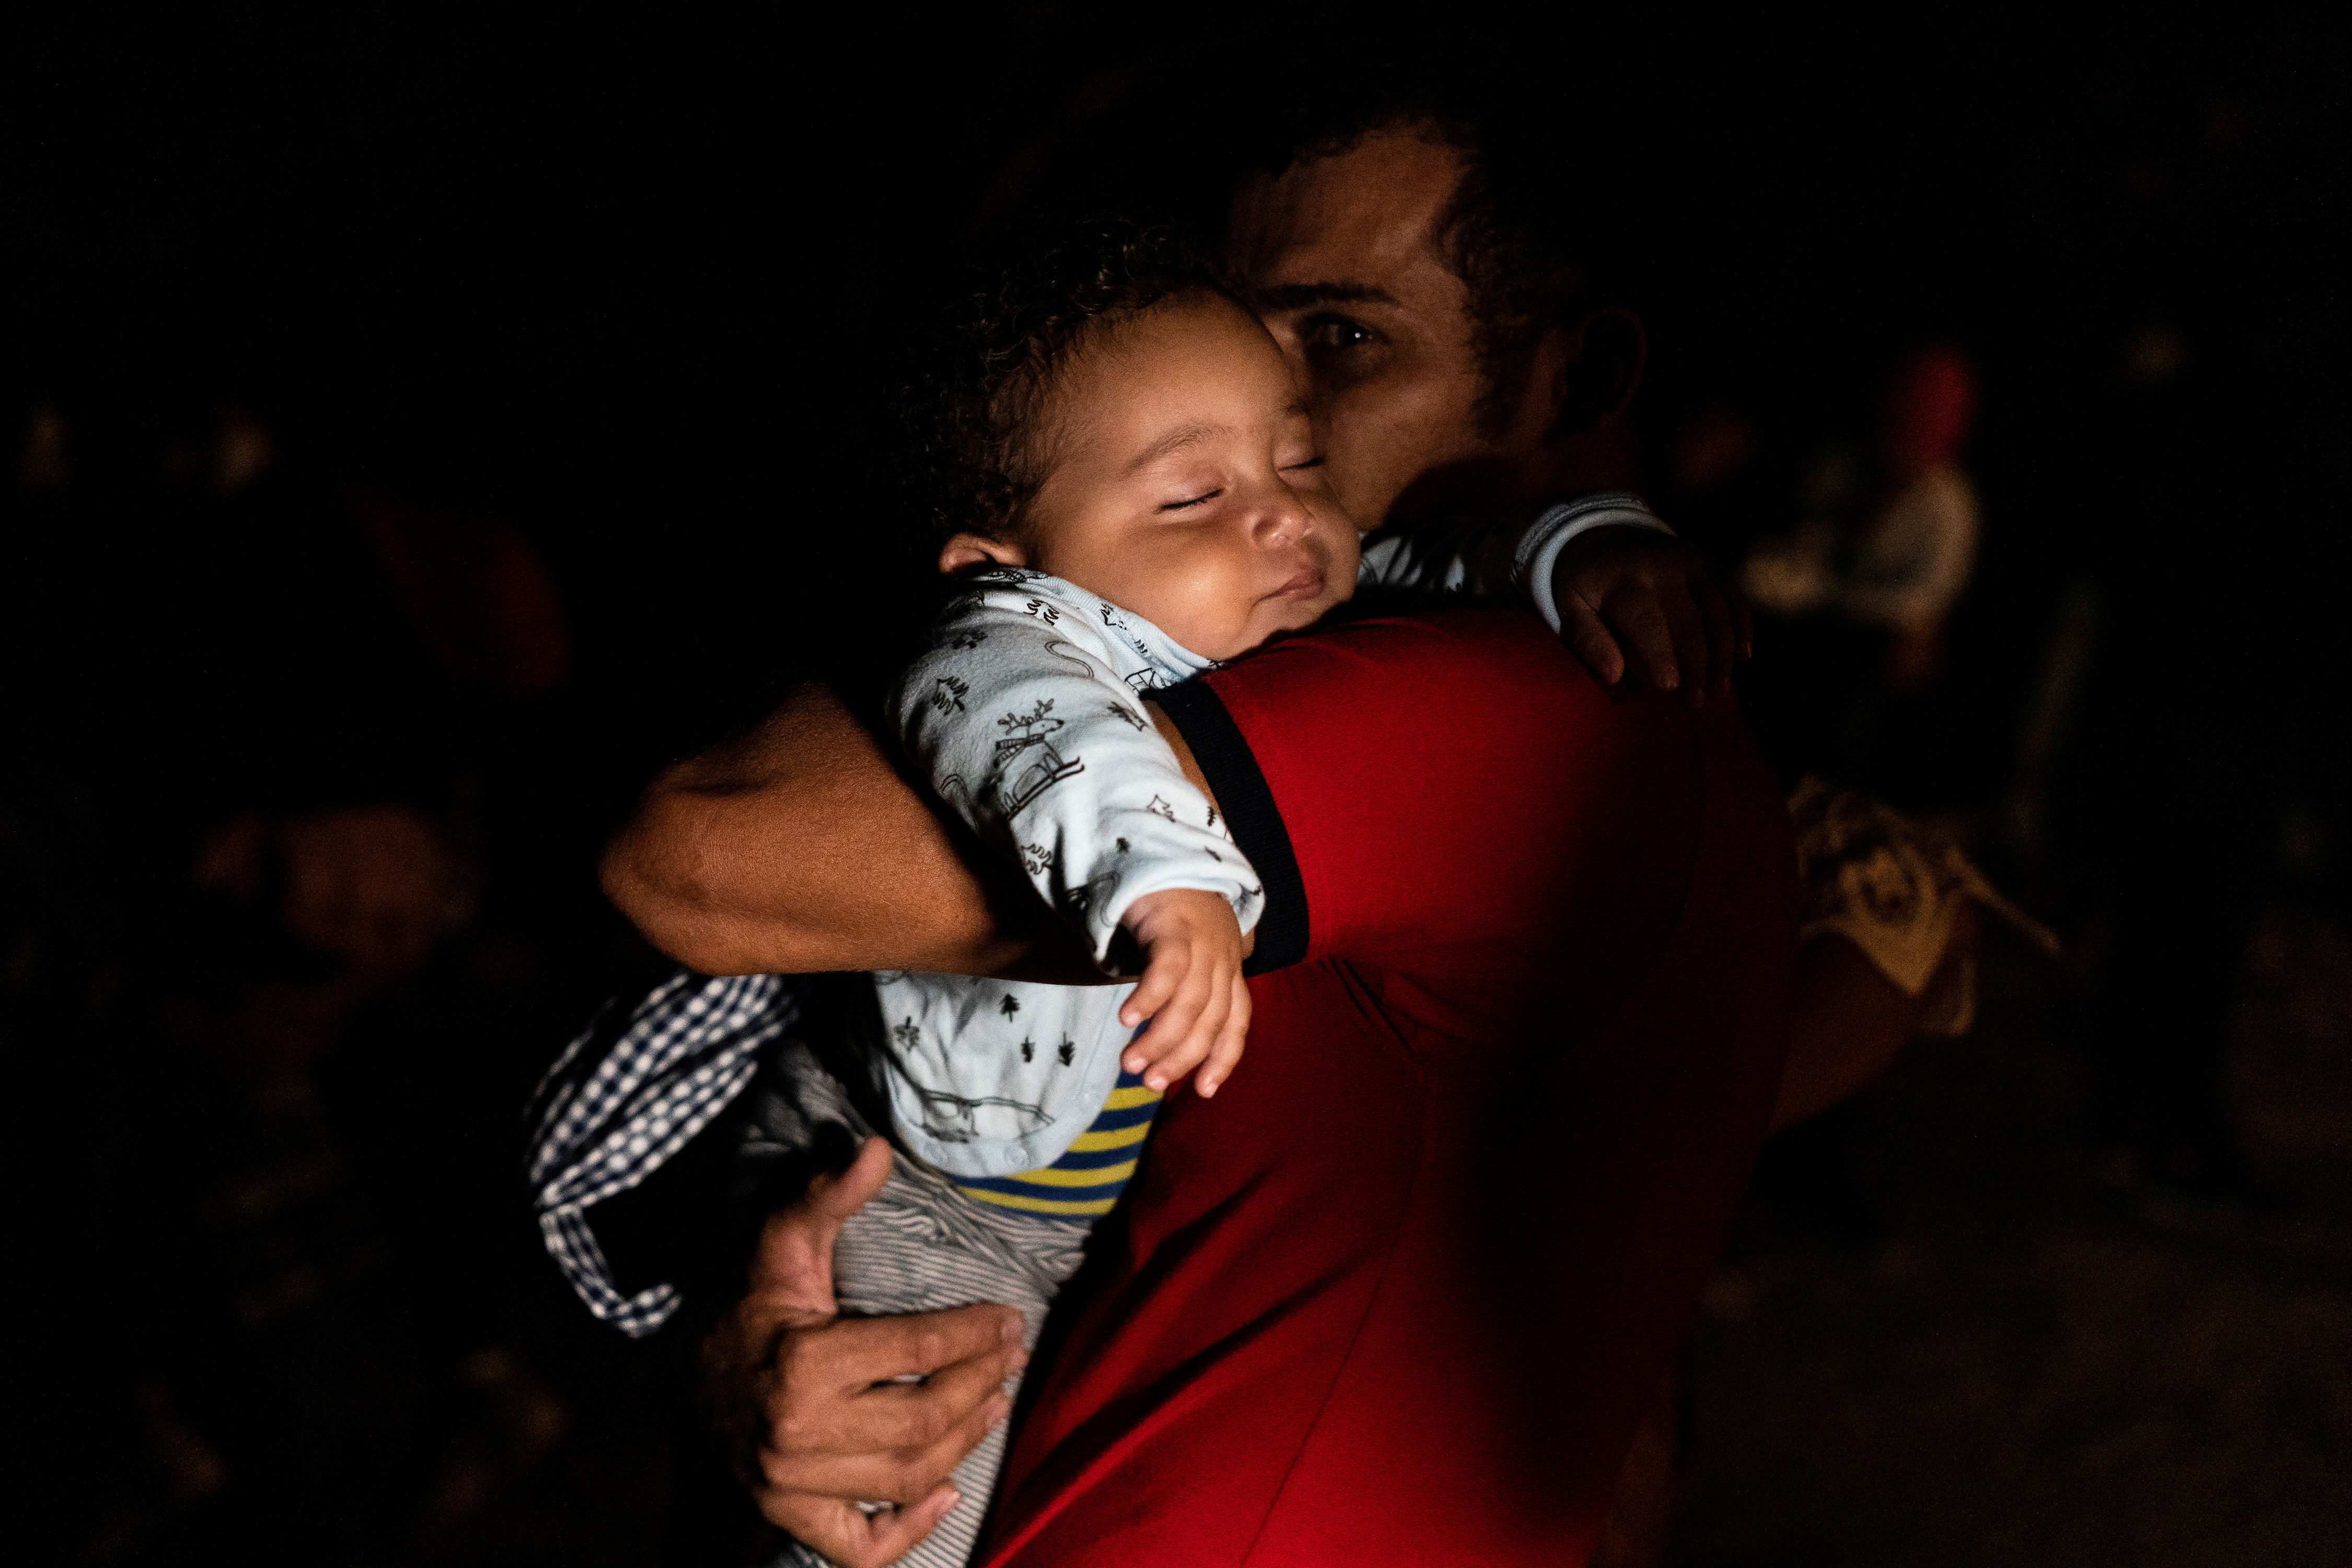 An asylum-seeking migrant father carries his child while waiting to be escorted by the U.S. Border Patrol after crossing the Rio Grande river into the United States from Mexico, in Roma, Texas, U.S., May 6, 2021. REUTERS/Go Nakamura/File Photo